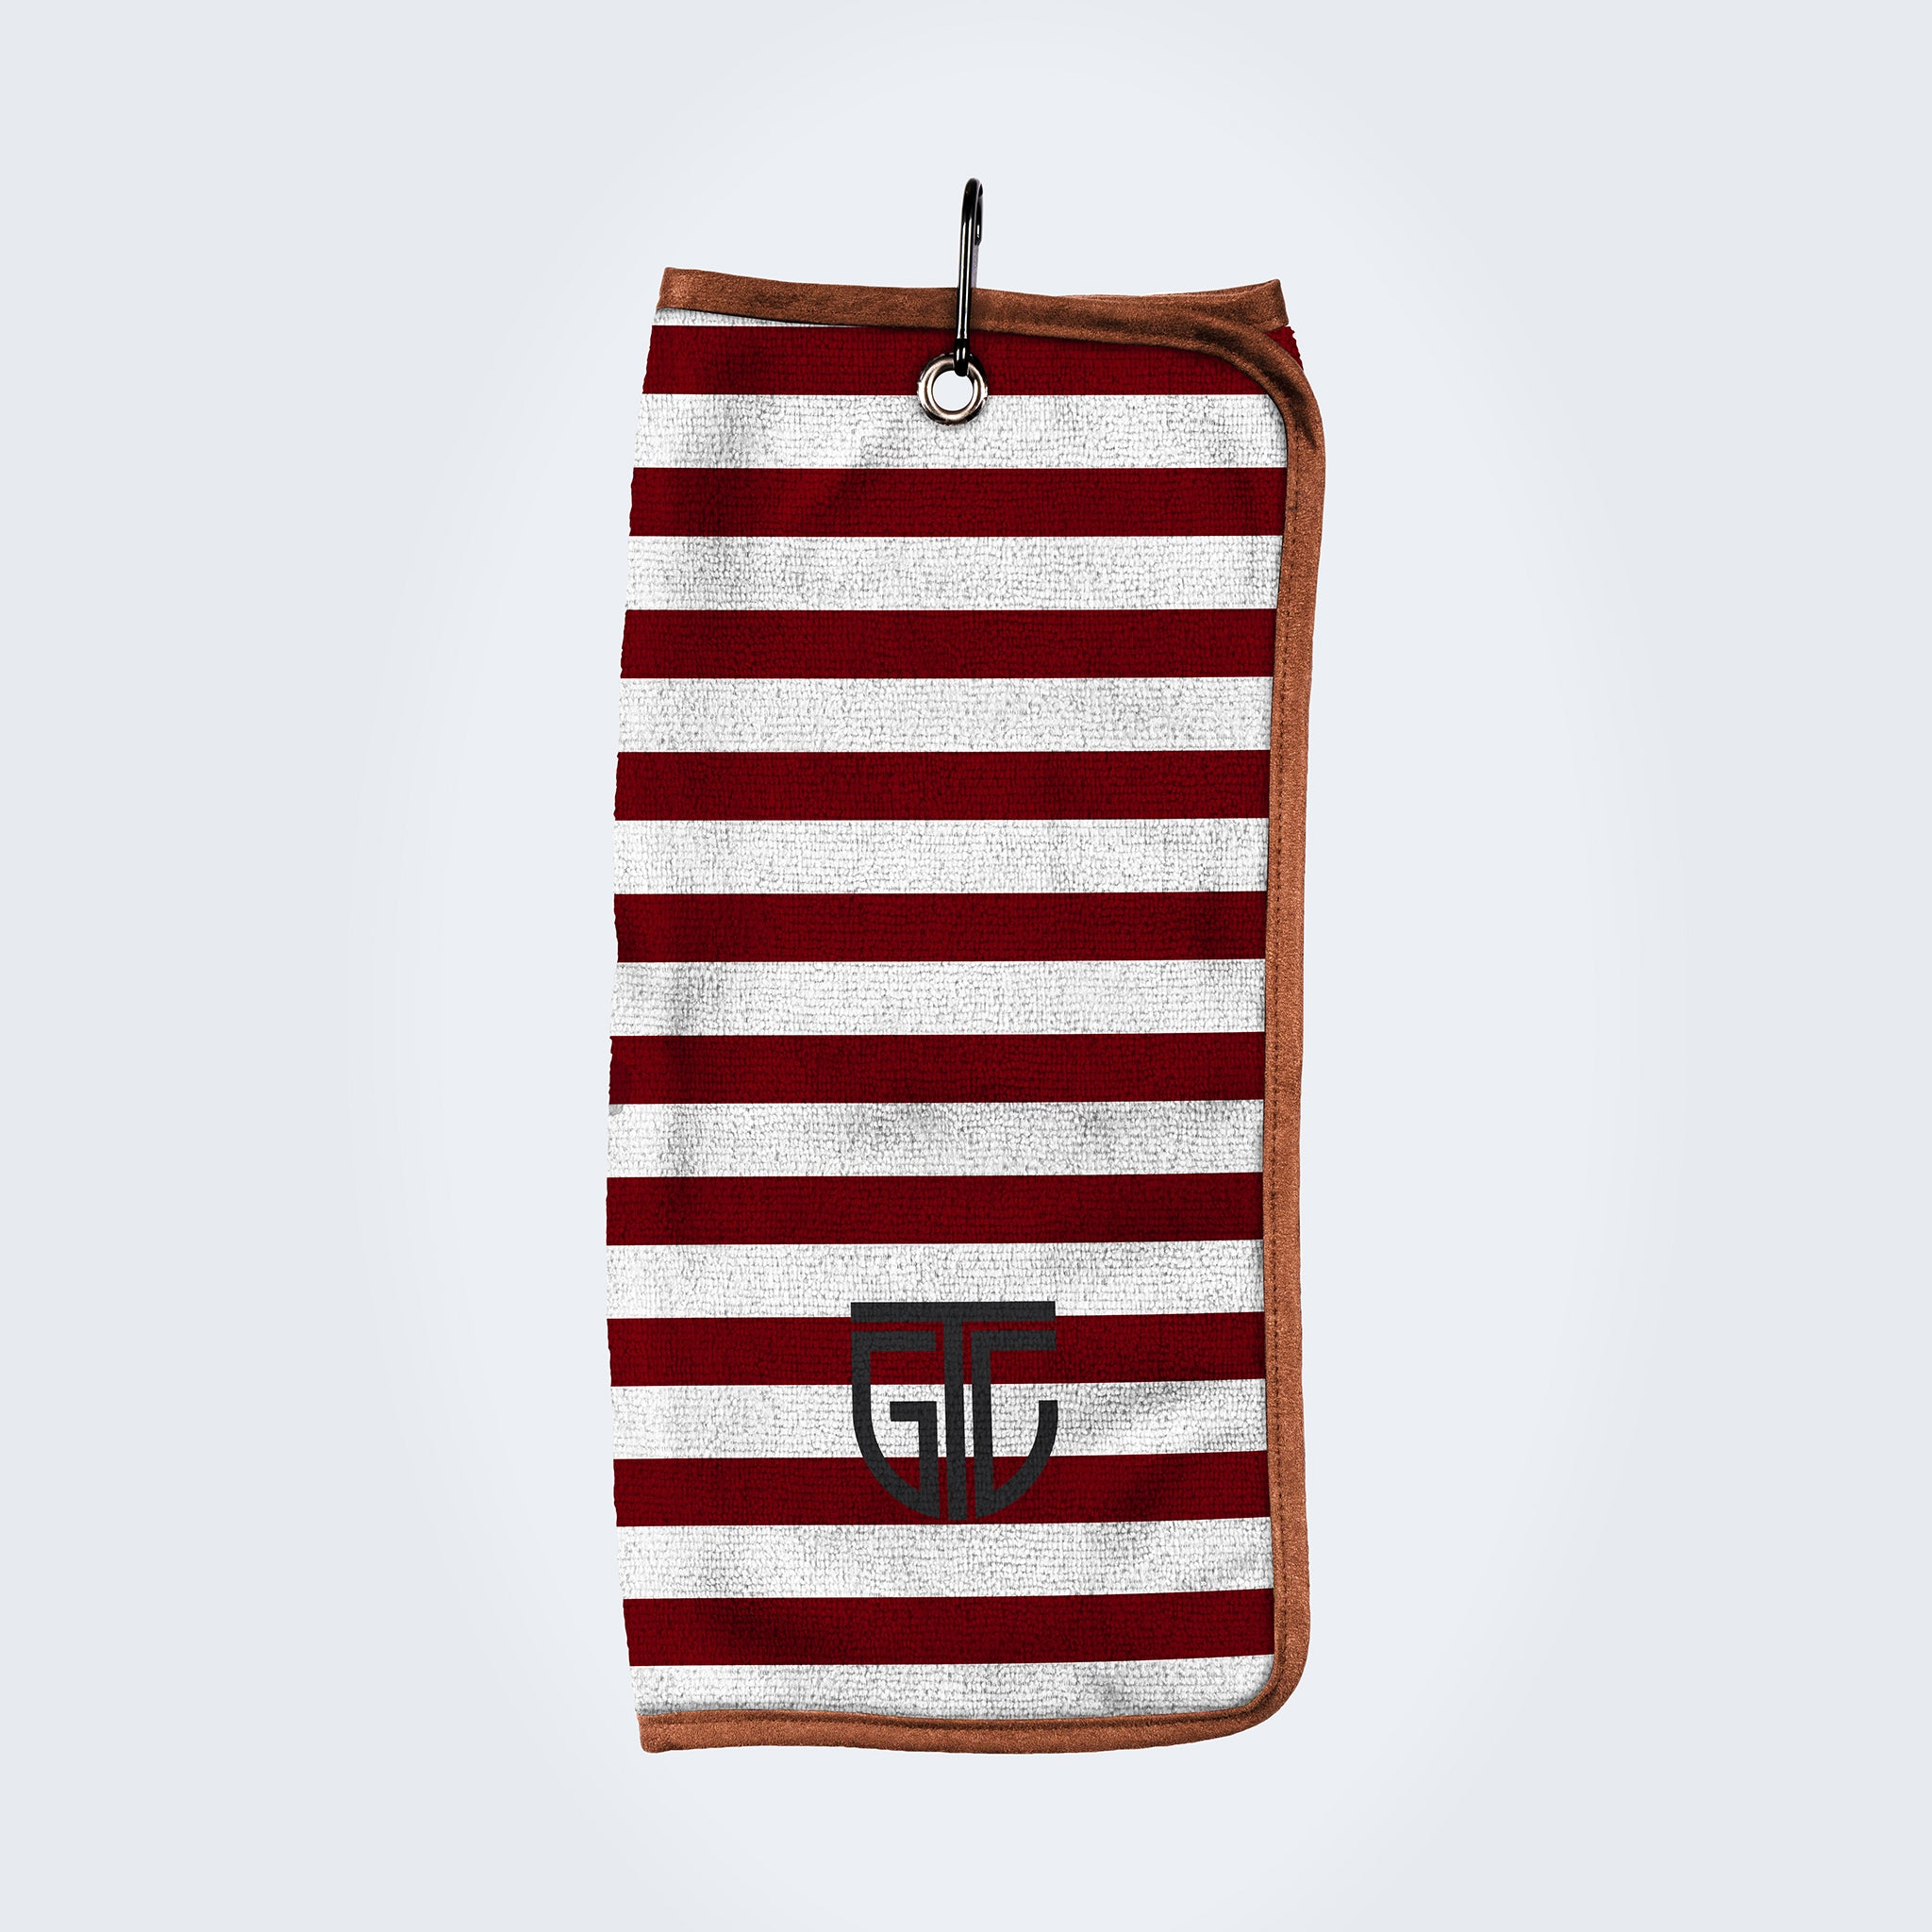 GTC Striped Towel - personalised golf clothing, golf teamwear, Head Covers, Towels & accessories online